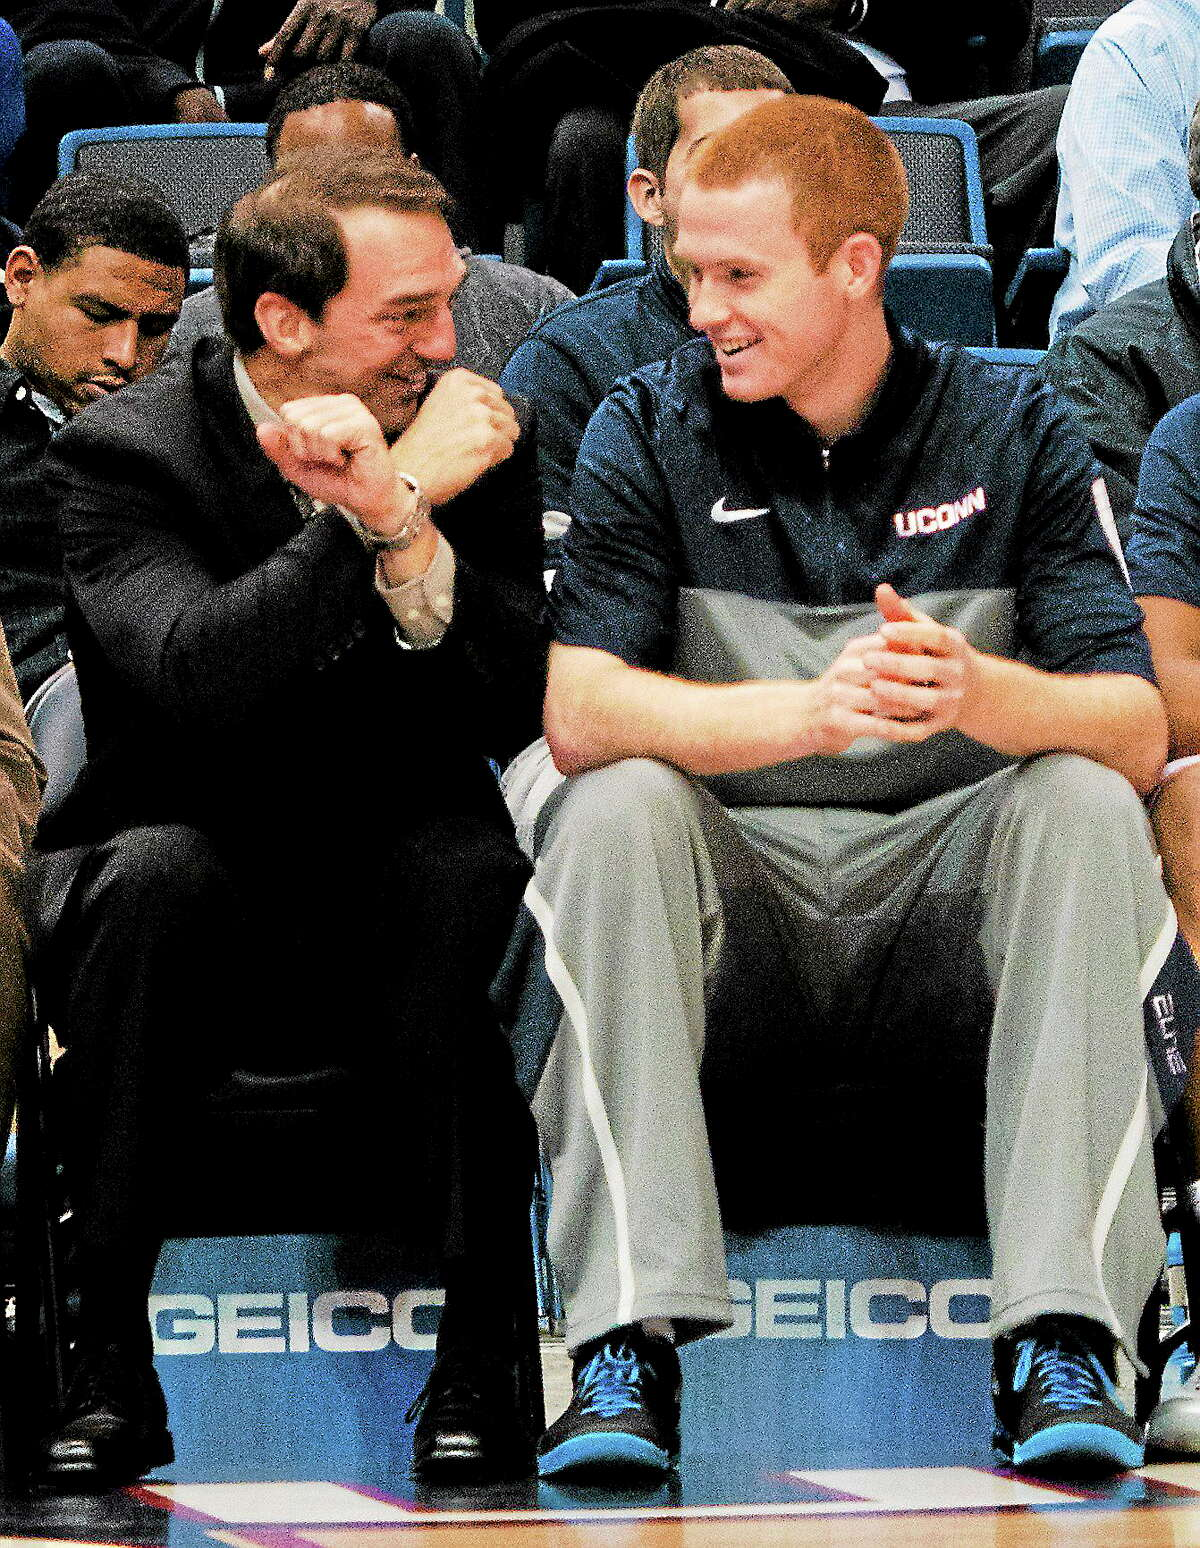 (Melanie Stengel — New Haven Register) Pat Lenehan (R) from Cheshire is now playing for UCONN 11/11.